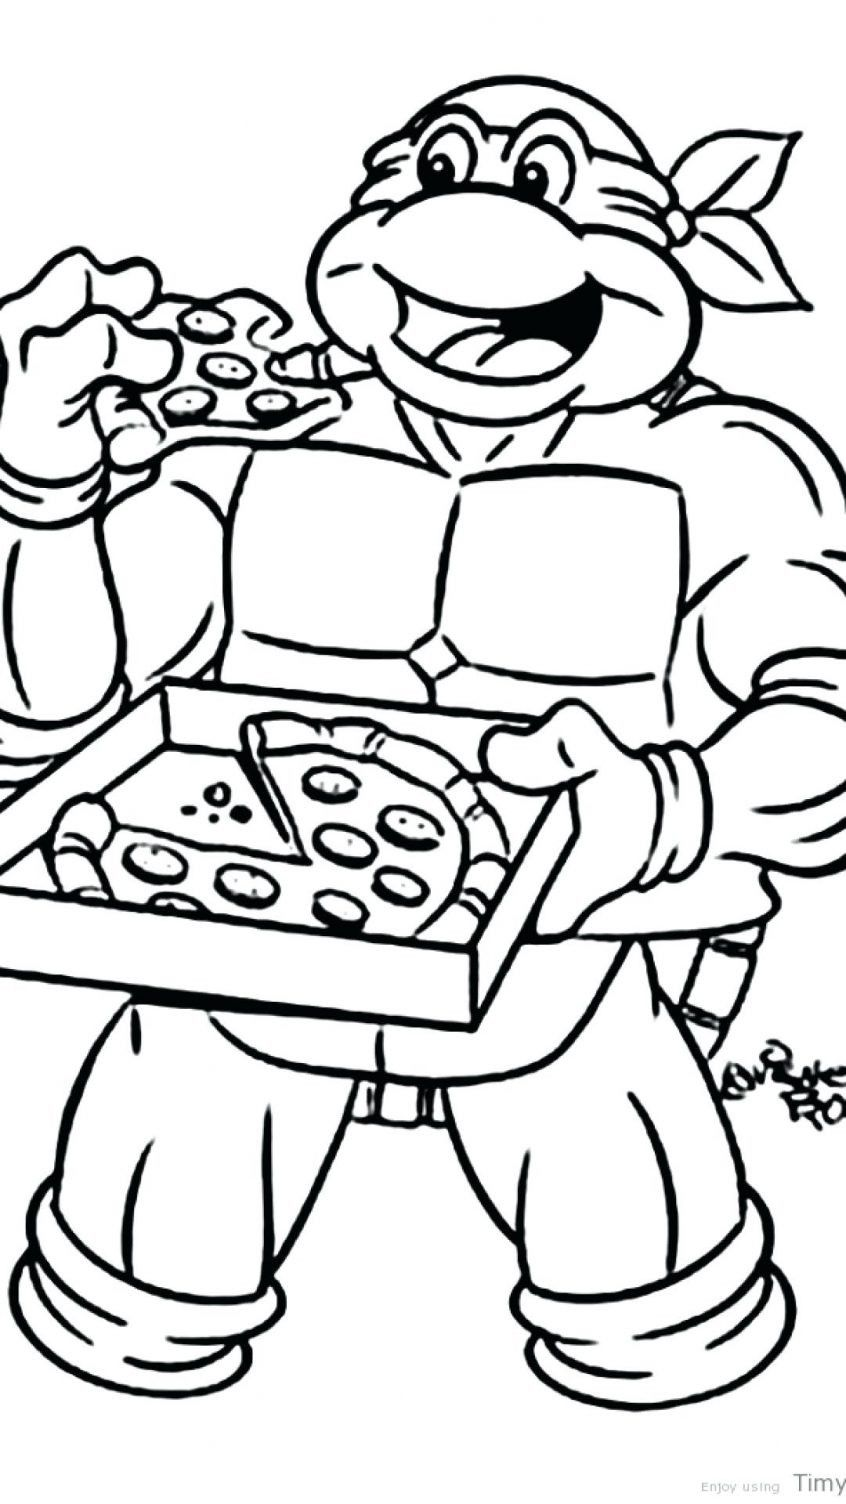 Baby Turtle Coloring Page Youngandtae Com Turtle Coloring Pages Baby Turtles Ninja Turtle Coloring Pages